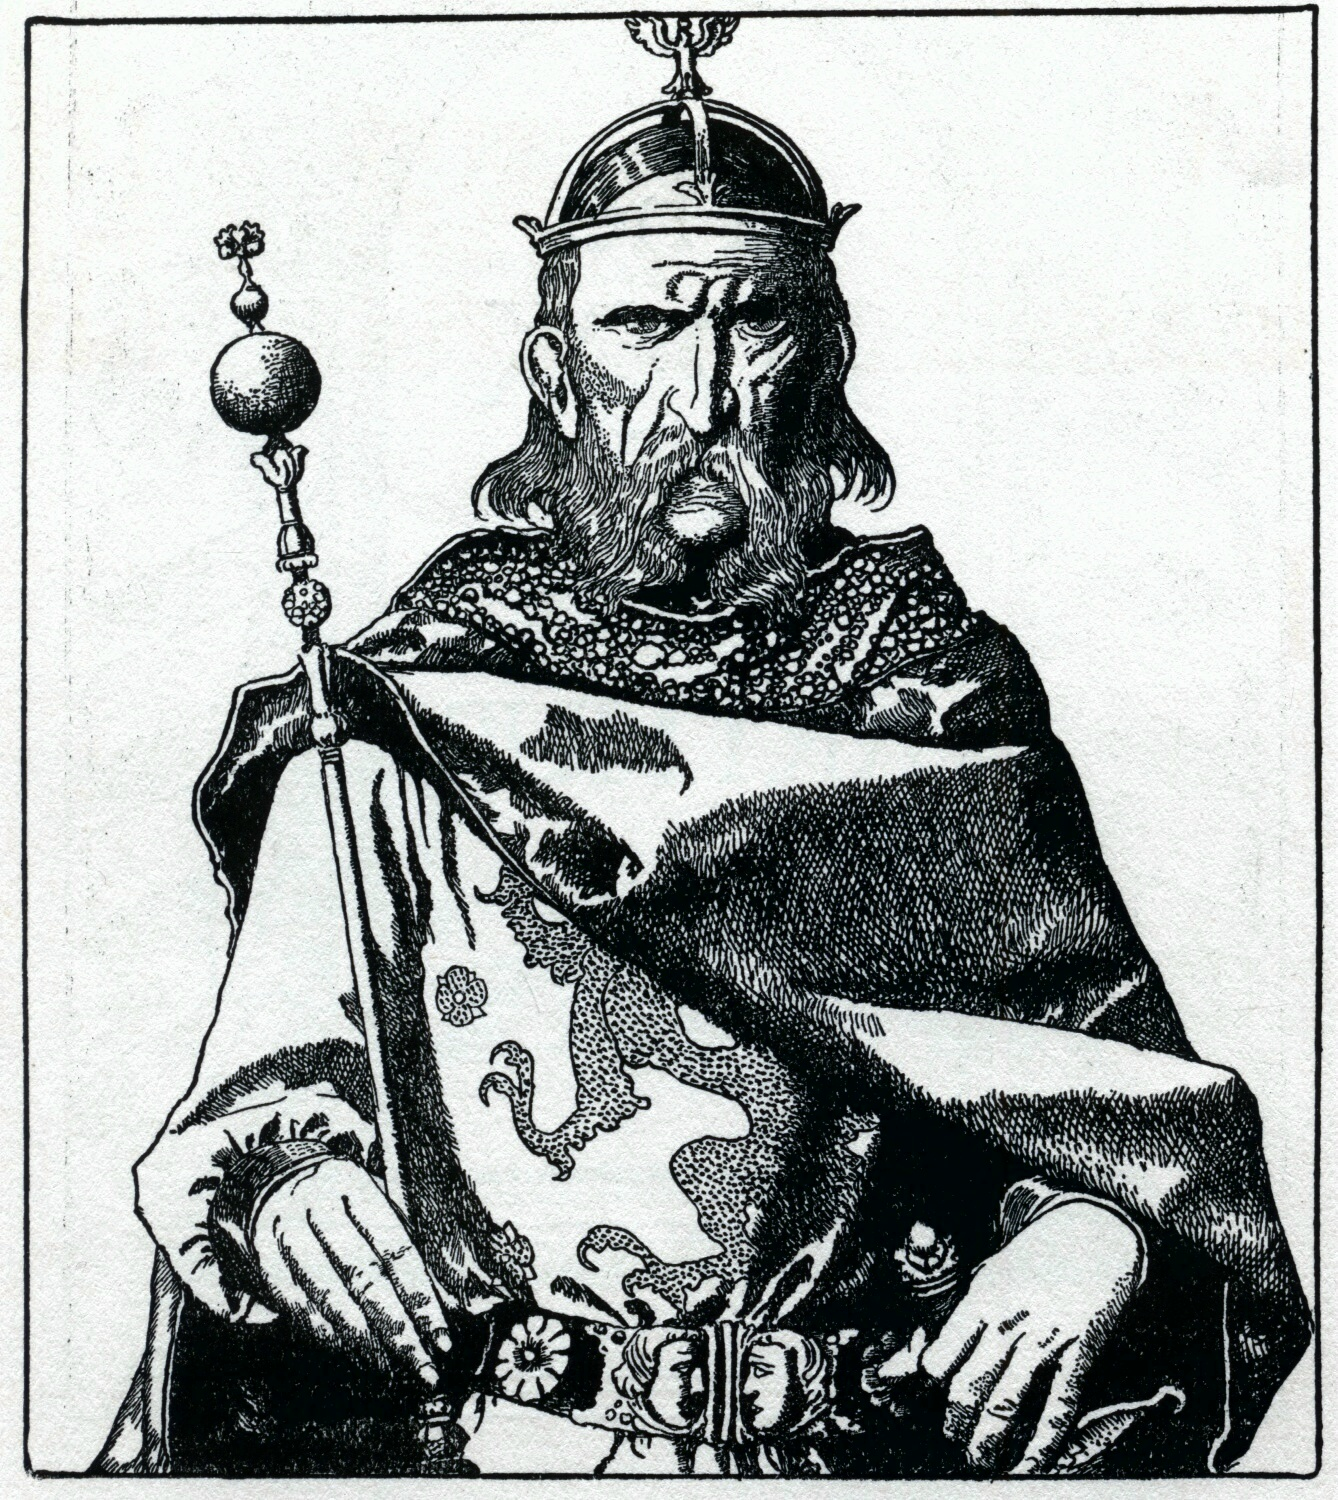 Uther Pendragon by Howard Pyle, 1903. A solemn man with a beard and mustache sits enthroned with a scepter and crown.